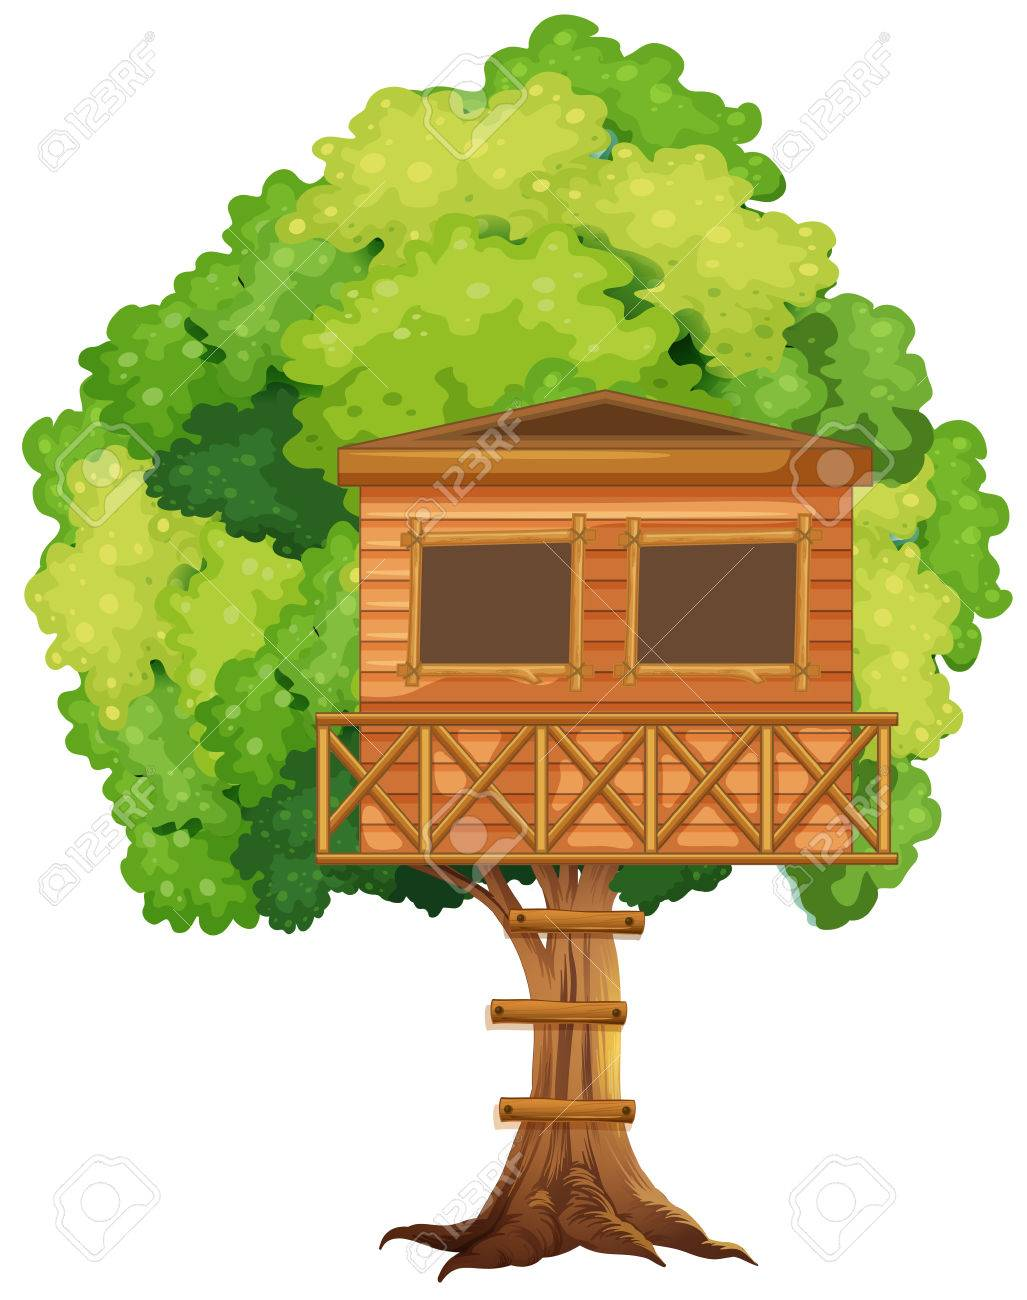 one treehouse in the tree illustration royalty free cliparts rh 123rf com Tree House Sketch magic tree house clipart